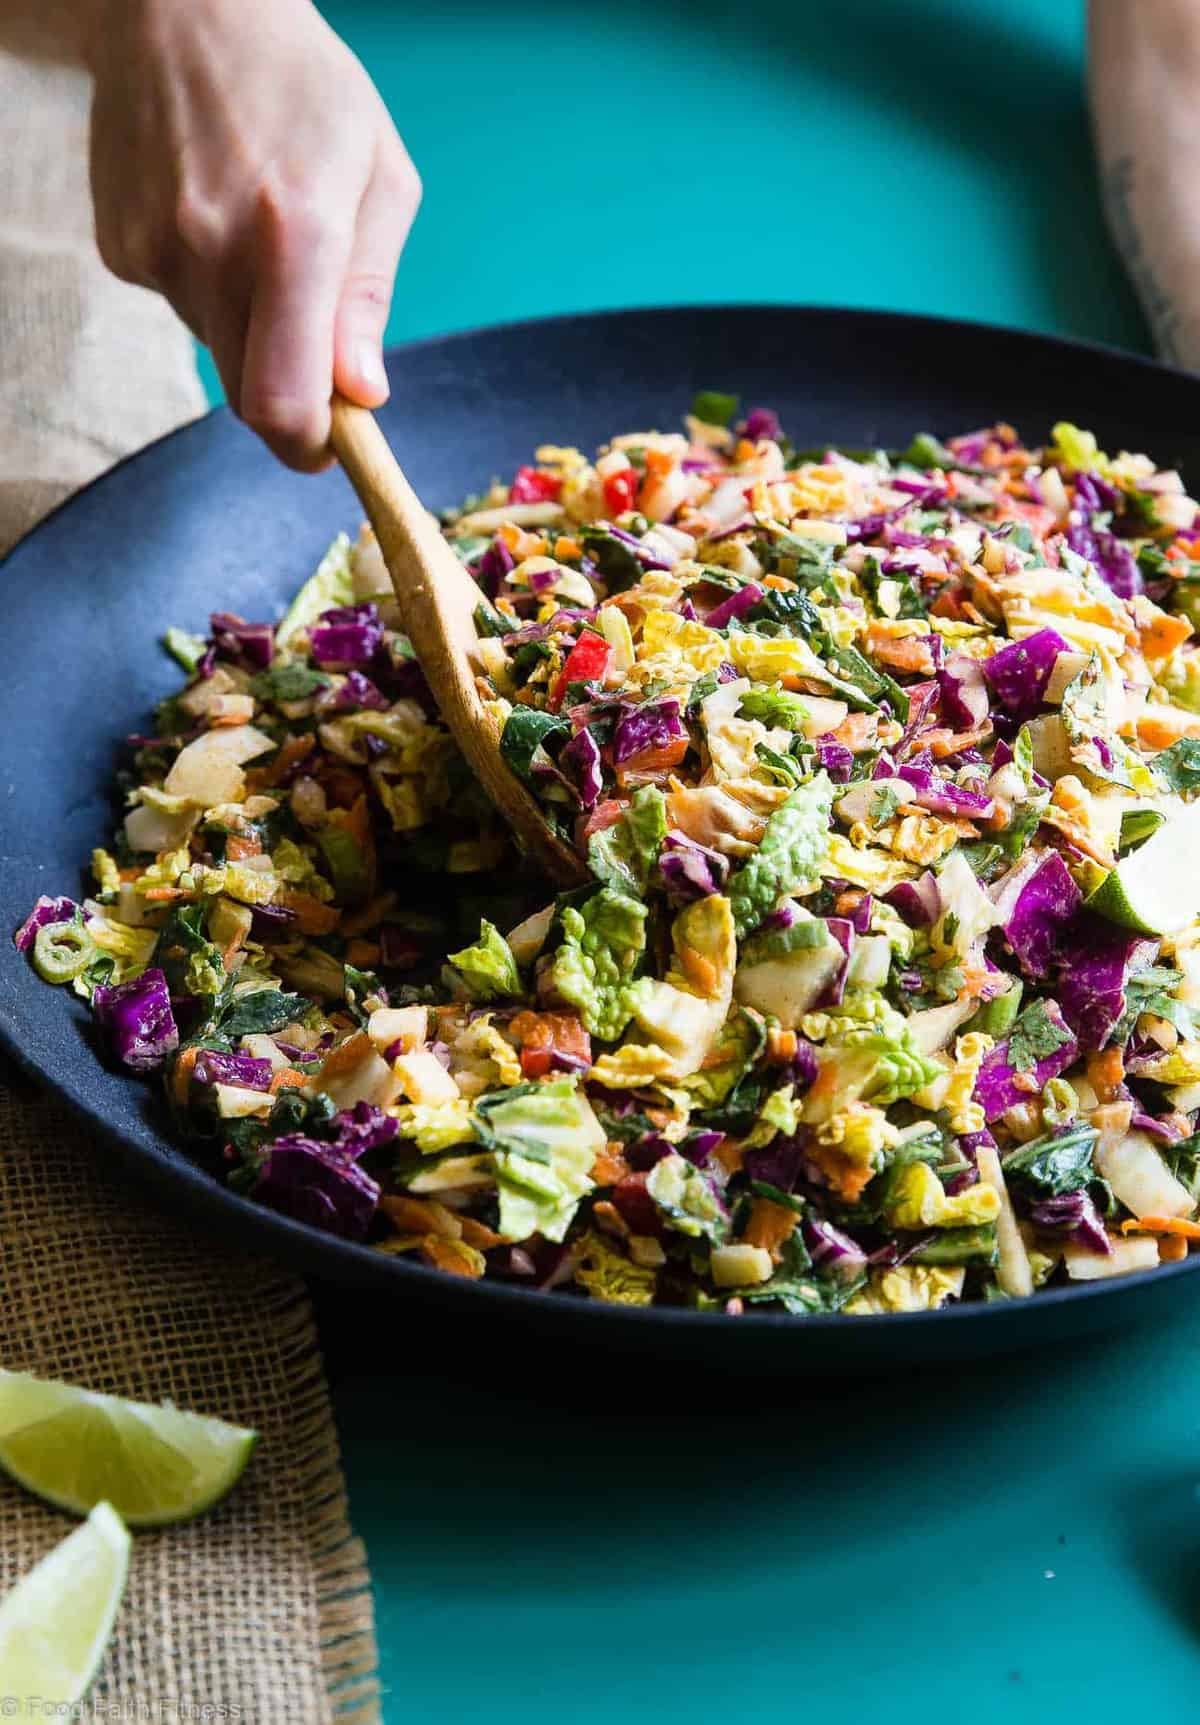 Oriental Coleslaw being served from a wok